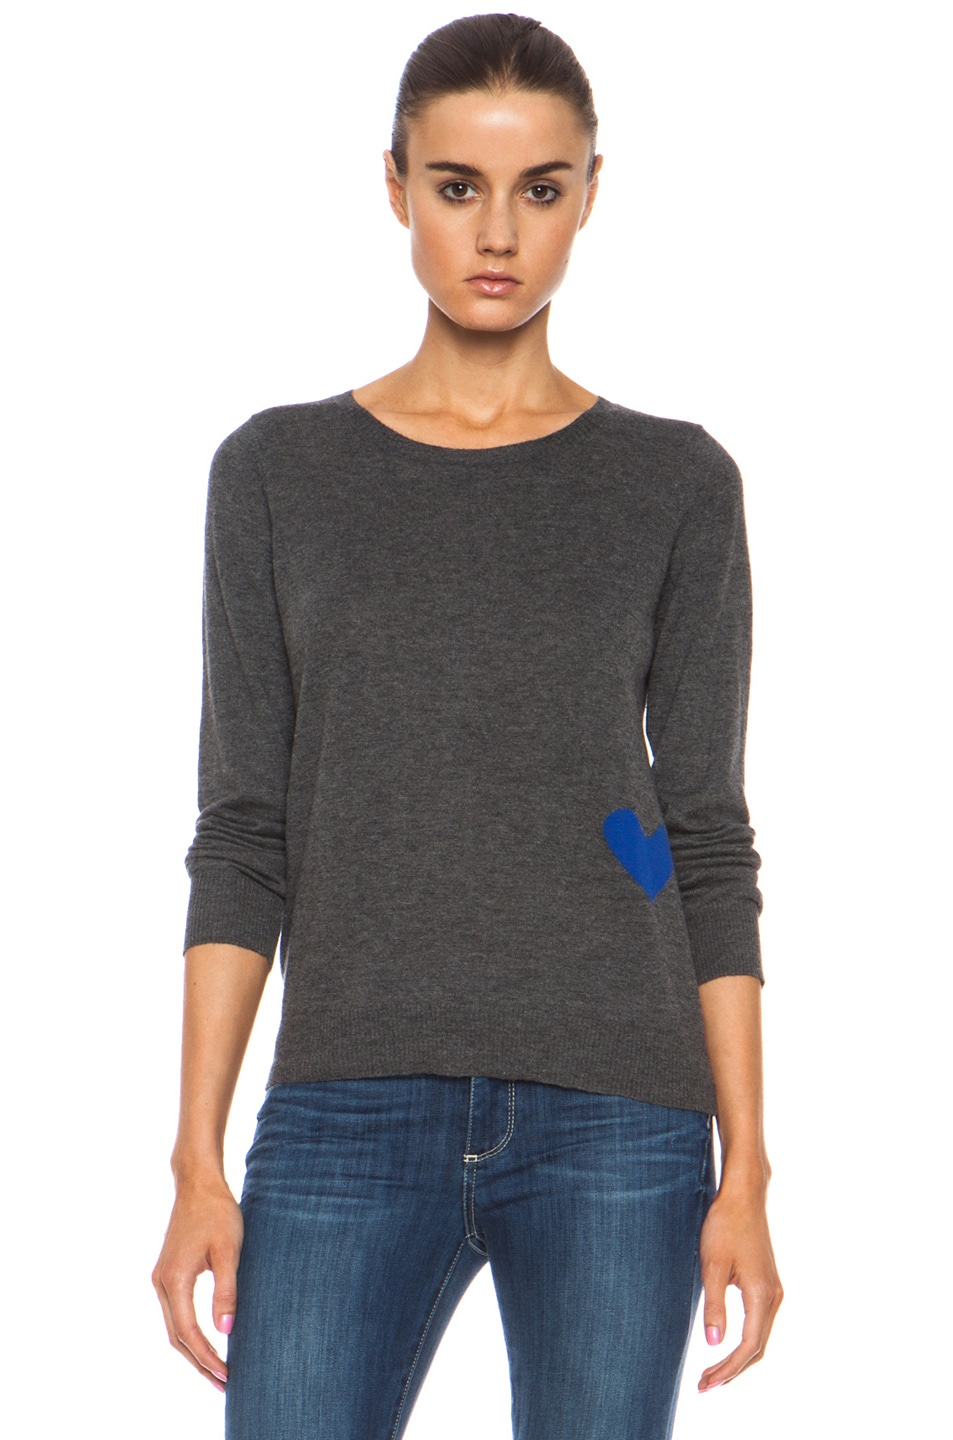 Image 1 of Golden Goose Heart Cashmere Pullover with Button Back Detail in Melange Grey